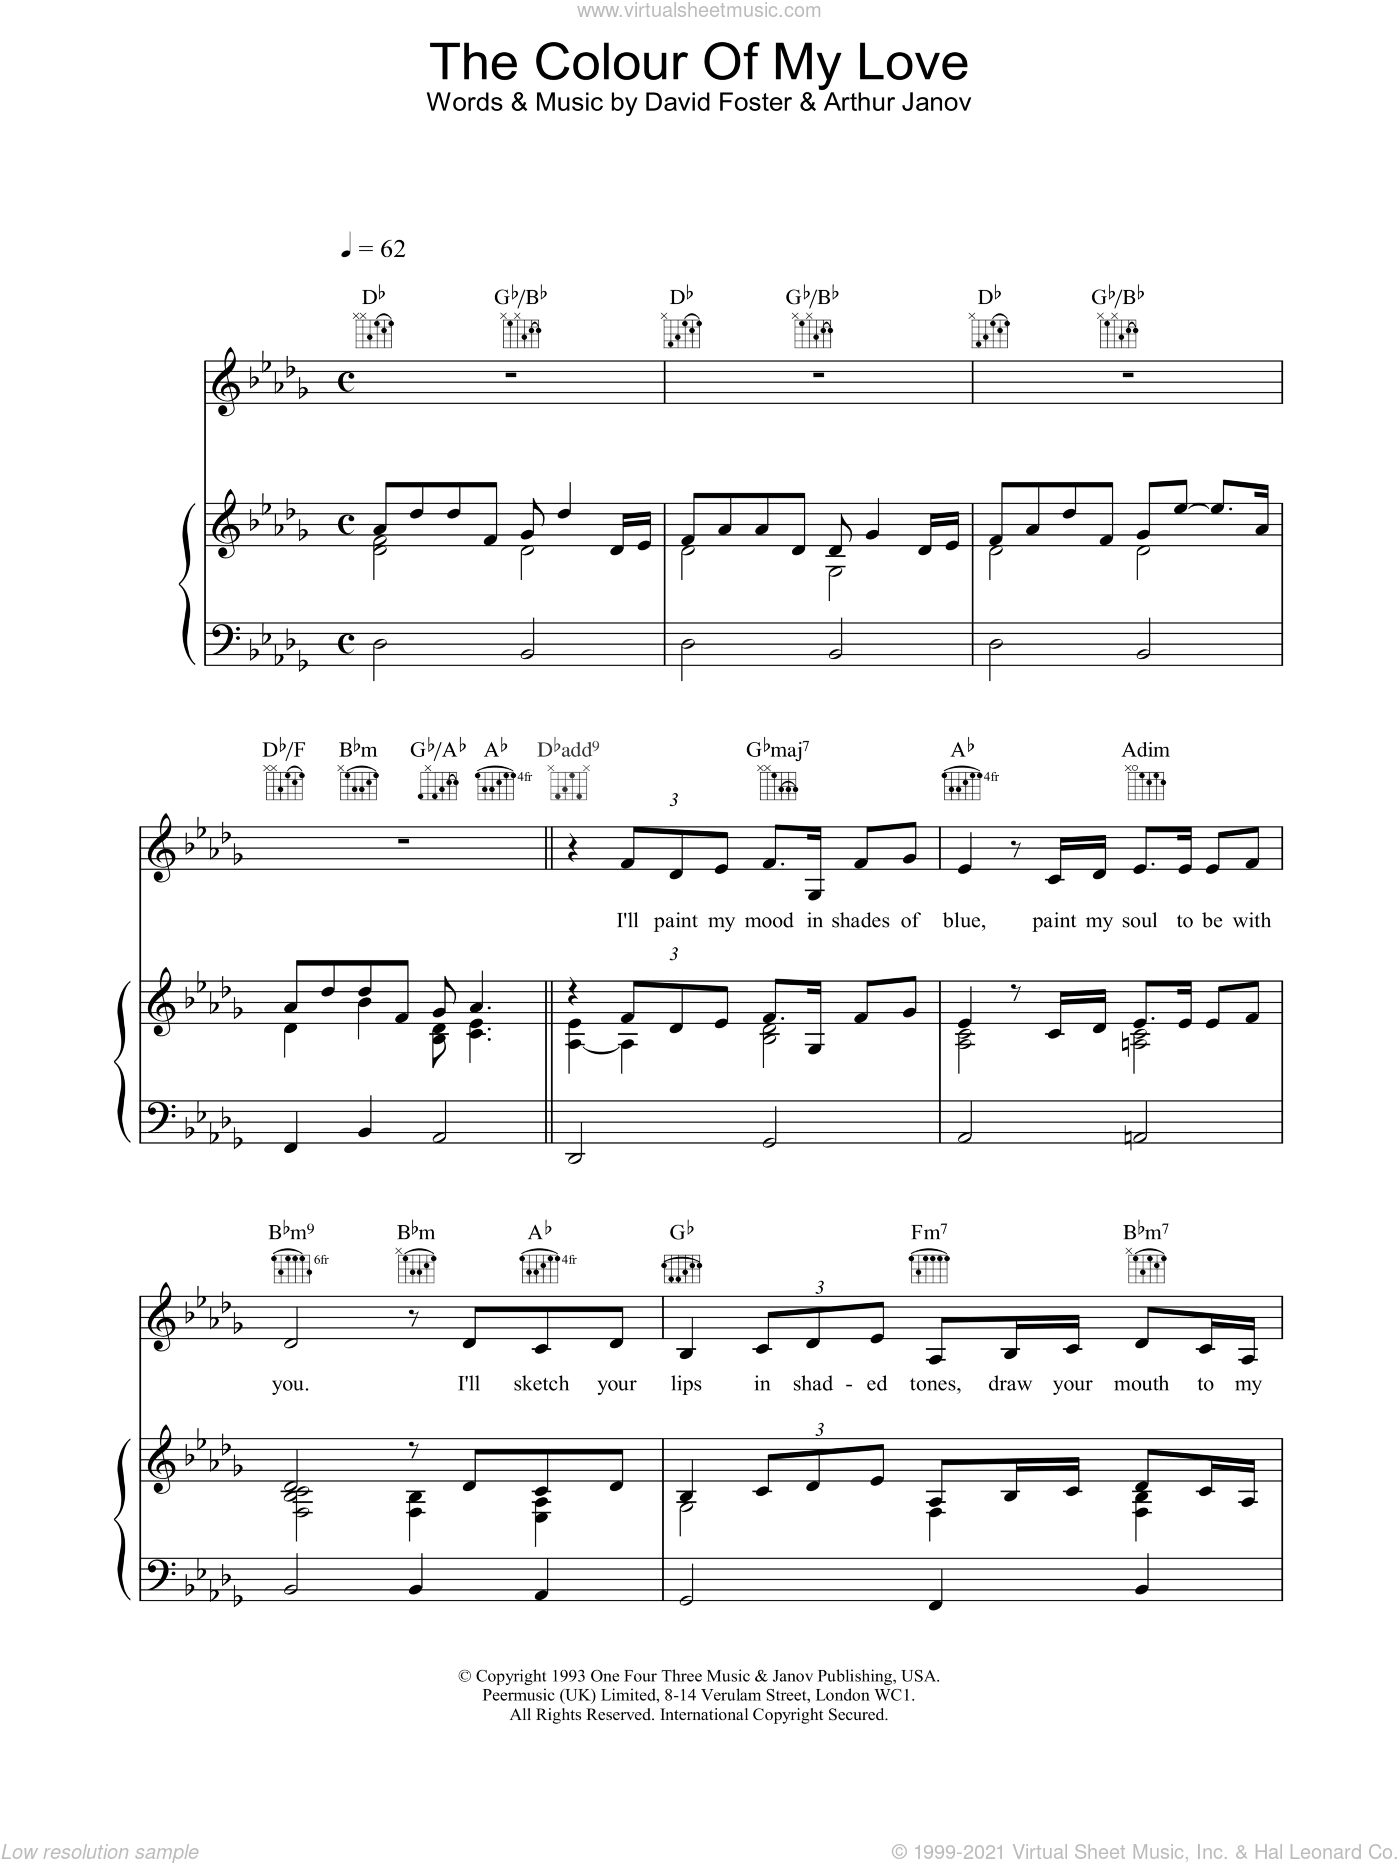 The Colour Of My Love sheet music for voice, piano or guitar by Celine Dion and David Foster, intermediate skill level